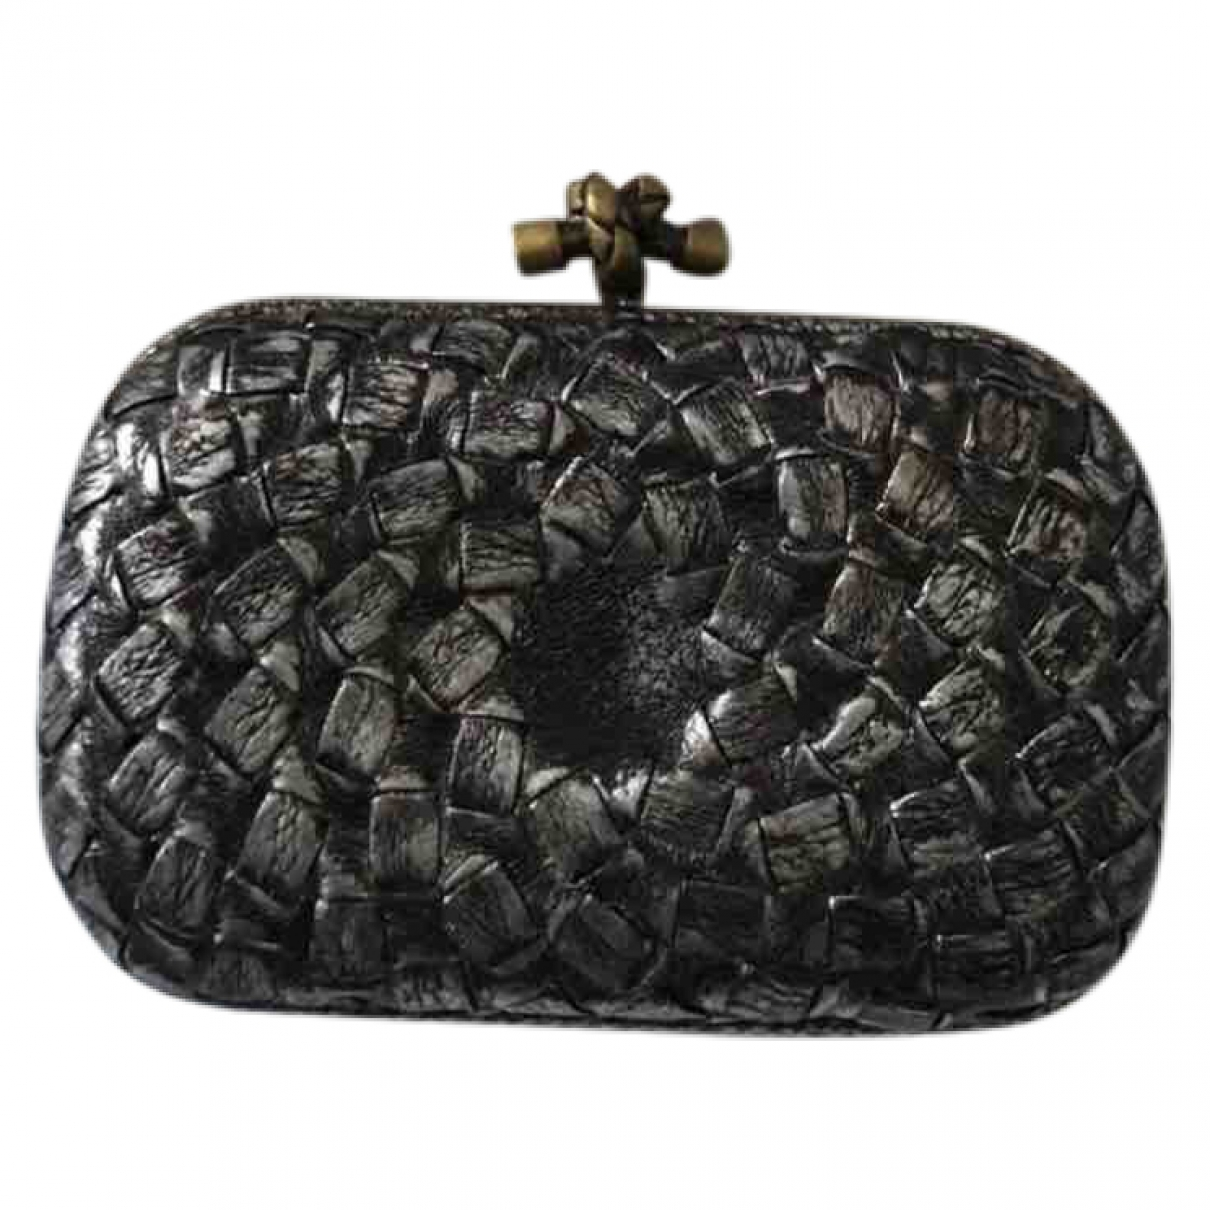 Bottega Veneta Pochette Knot Clutch in  Metallic Leder